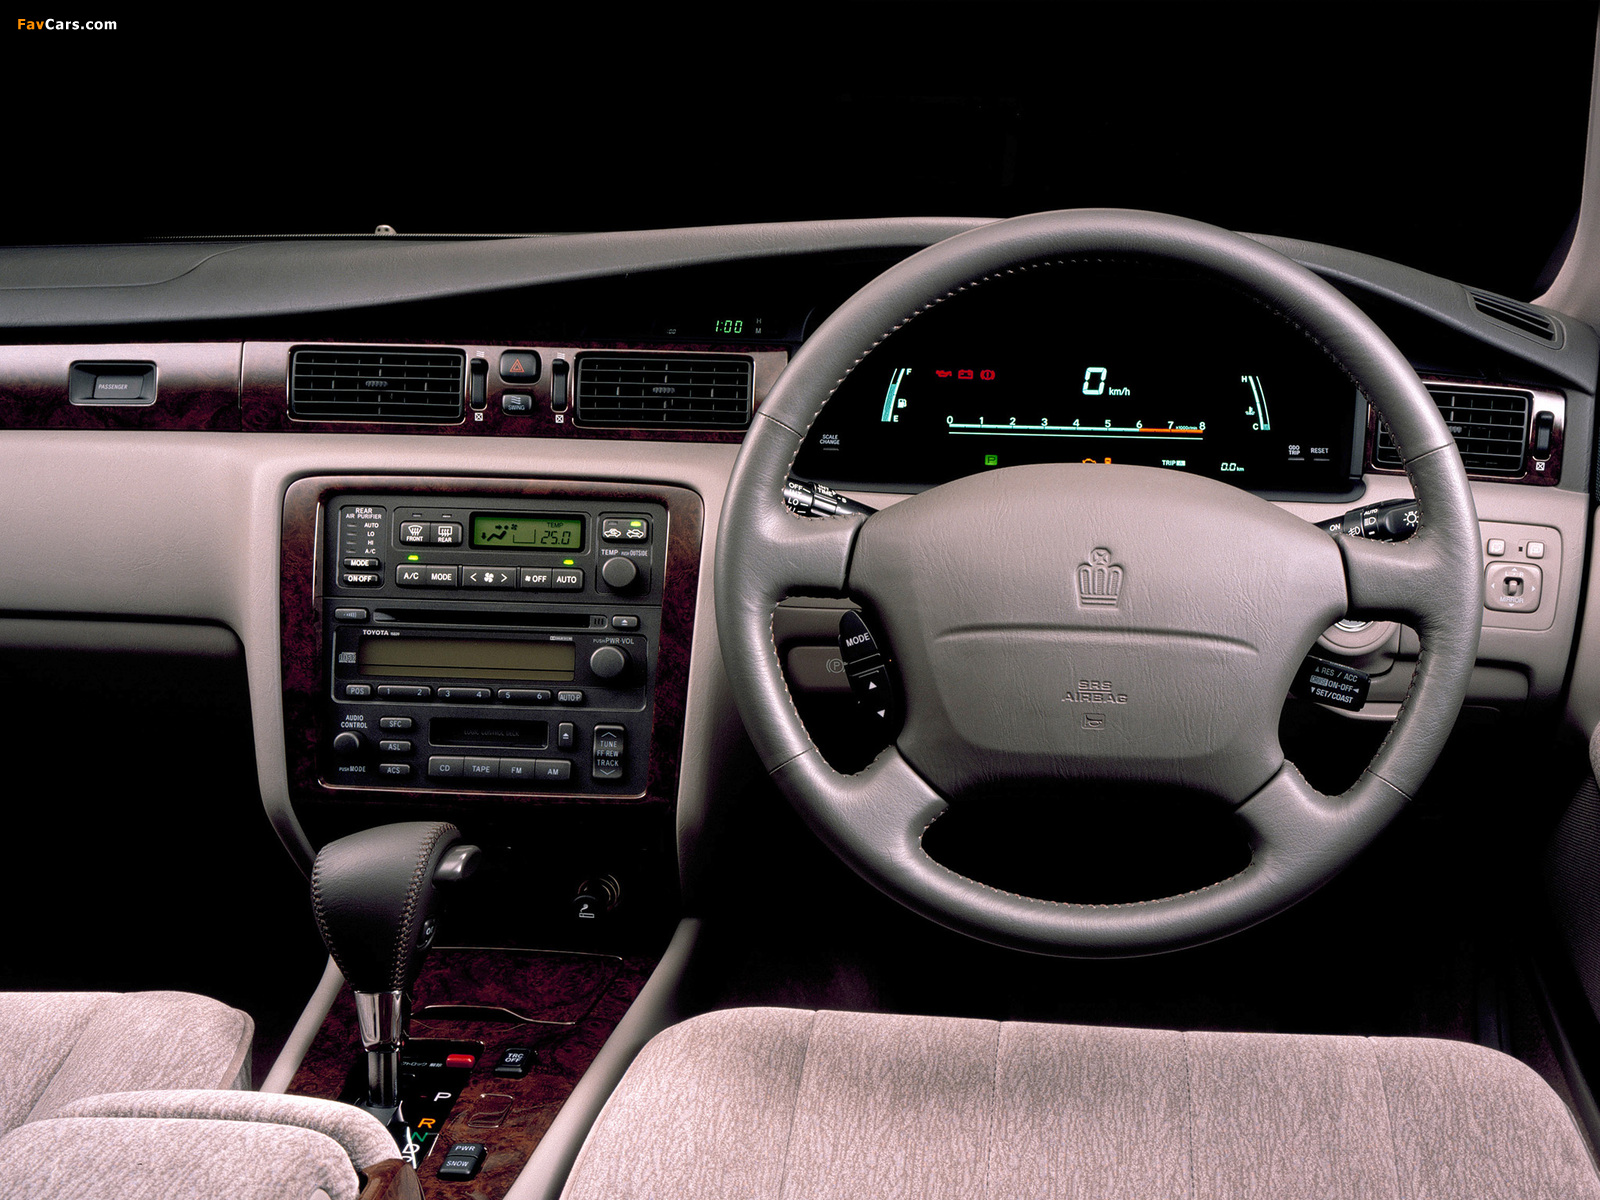 Toyota Crown Majesta (S150). Owners' reviews with photos ...